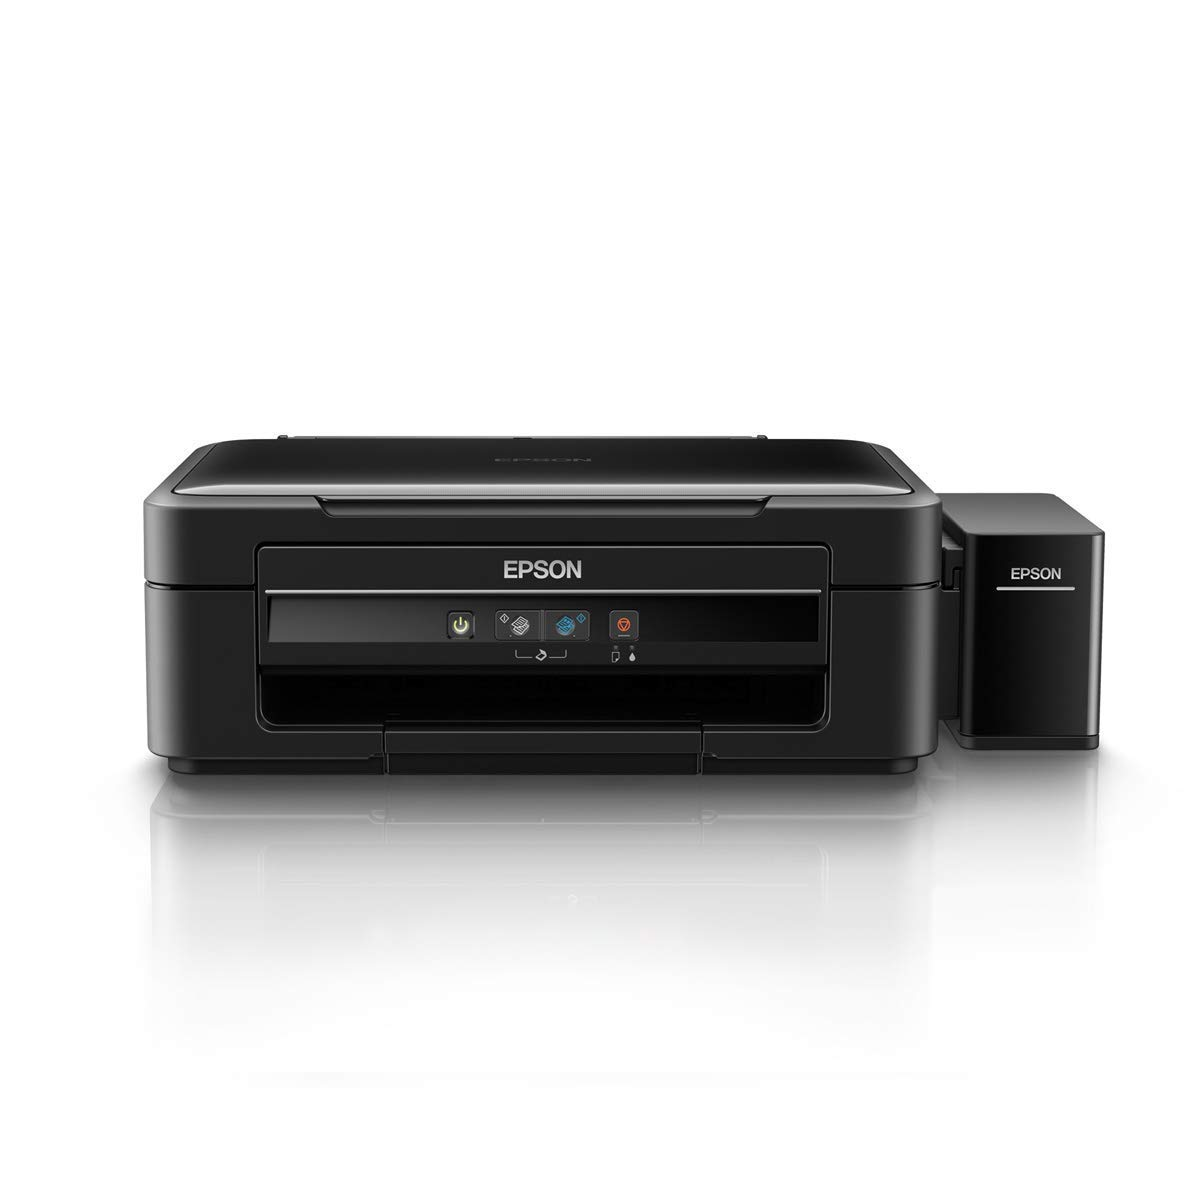 Amazon.in: Buy Epson L380 Multi-Function InkTank Colour Printer (Black)  Online at Low Prices in India | Epson Reviews & Ratings